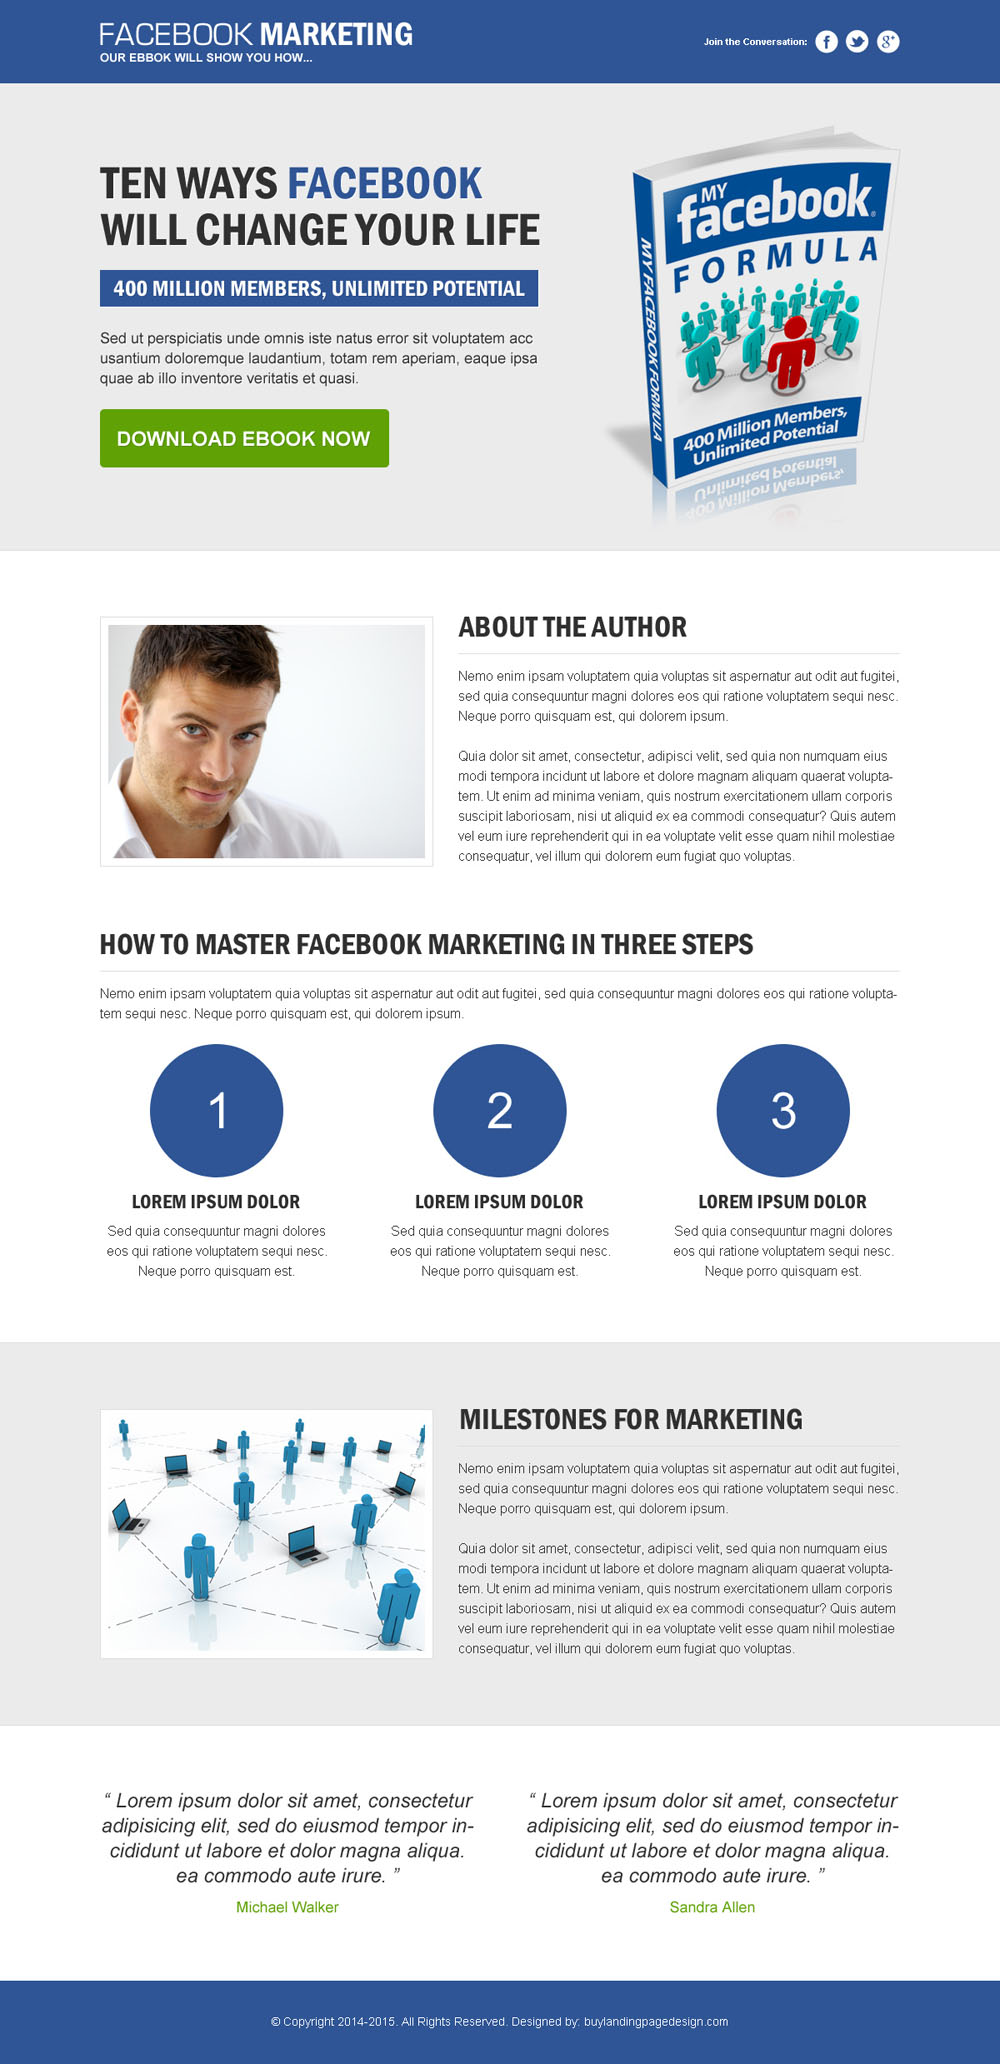 clean-and-creative-facebook-marketing-e-book-ppv-landing-page-design-templates-020